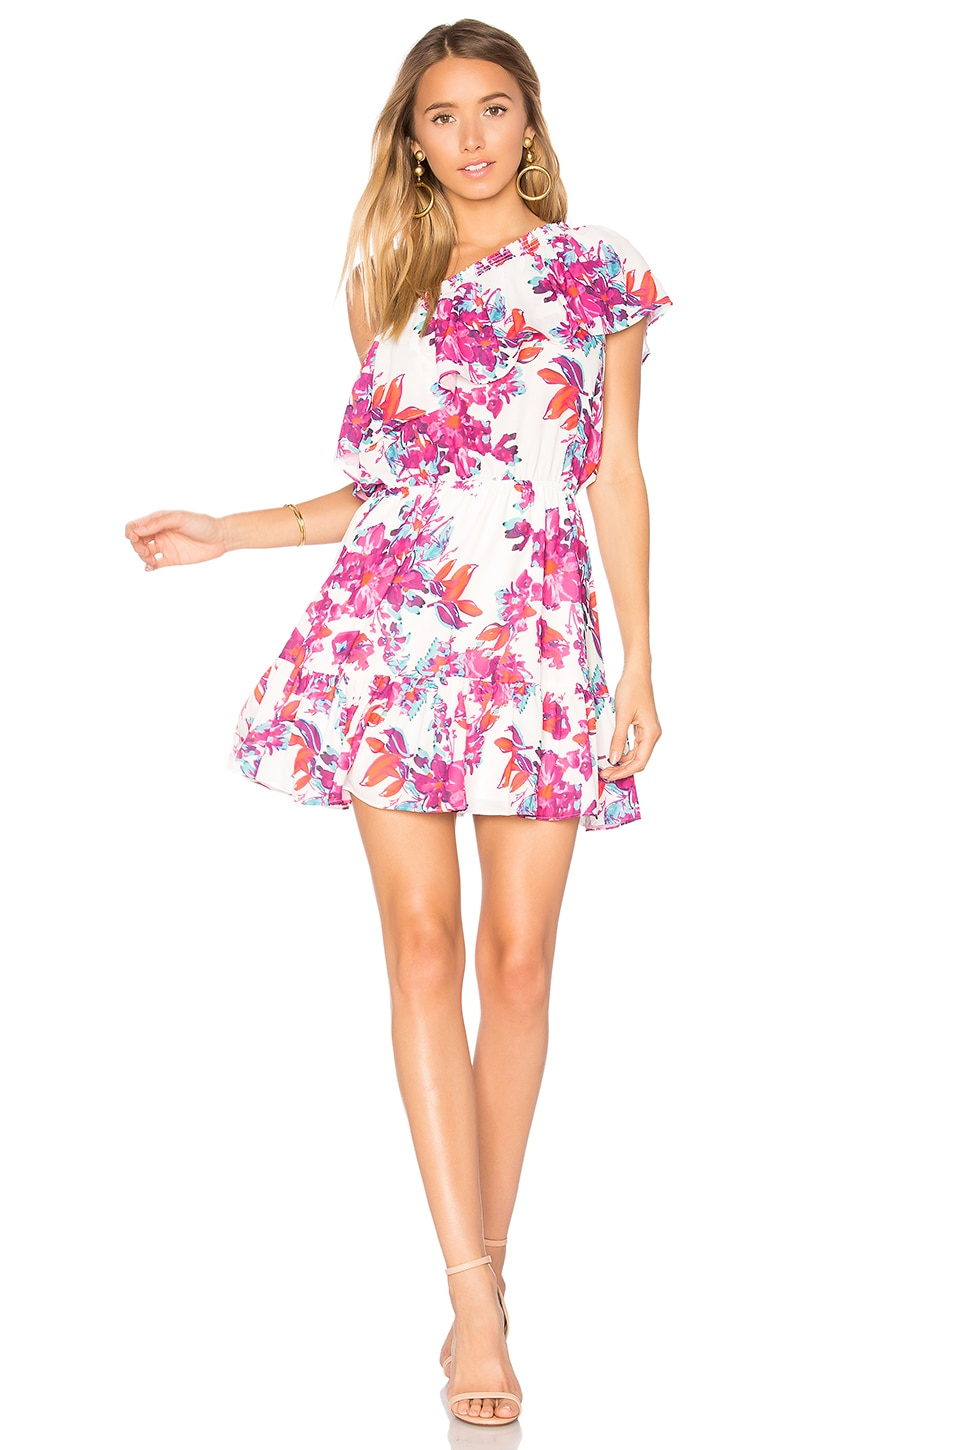 devlin Thea Dress in Watercolor Flowers